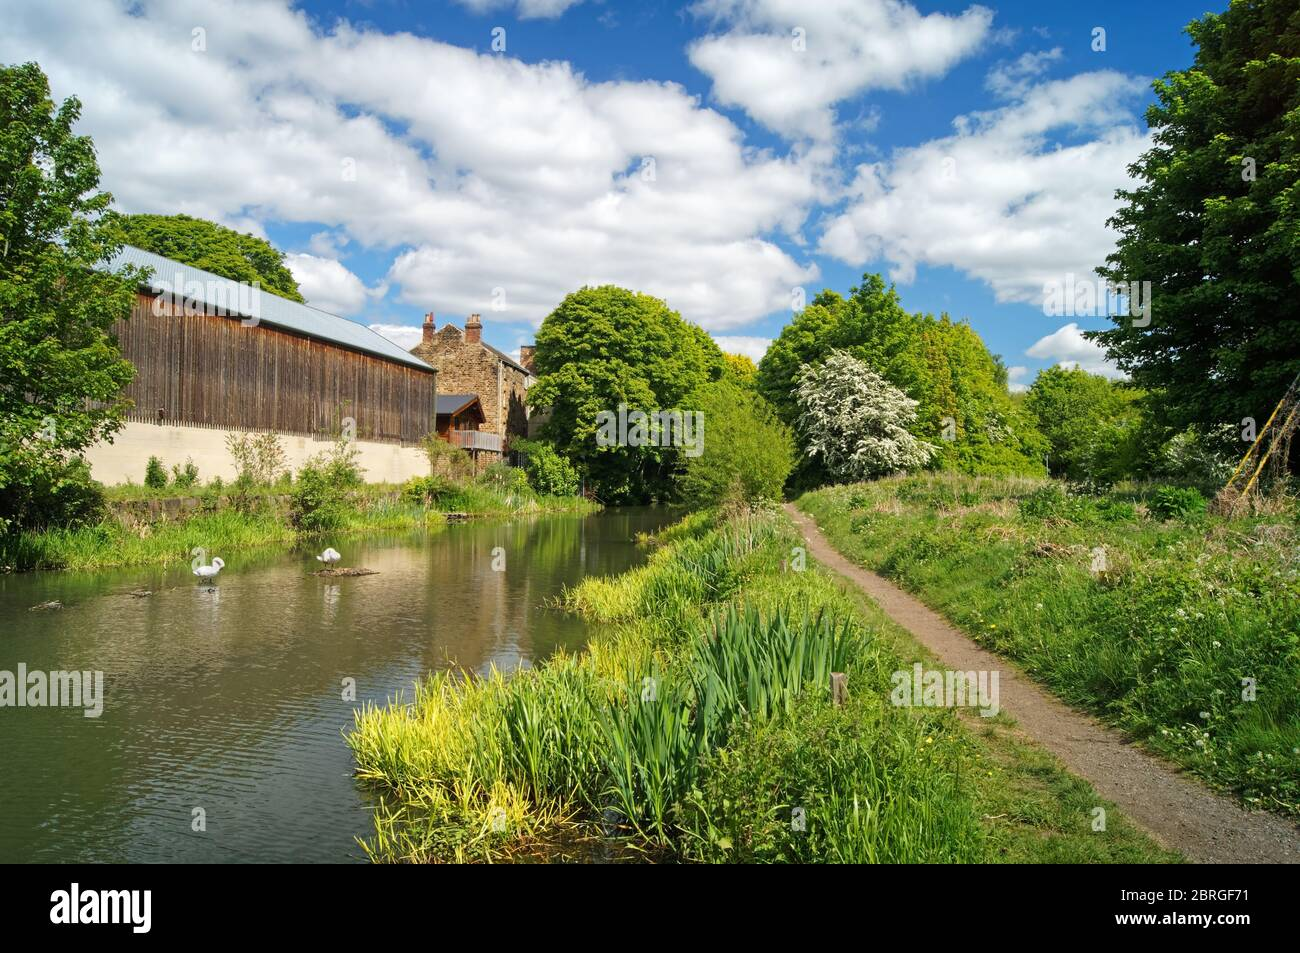 UK,South Yorkshire,Elsecar,Buildings next to Elsecar Canal Stock Photo